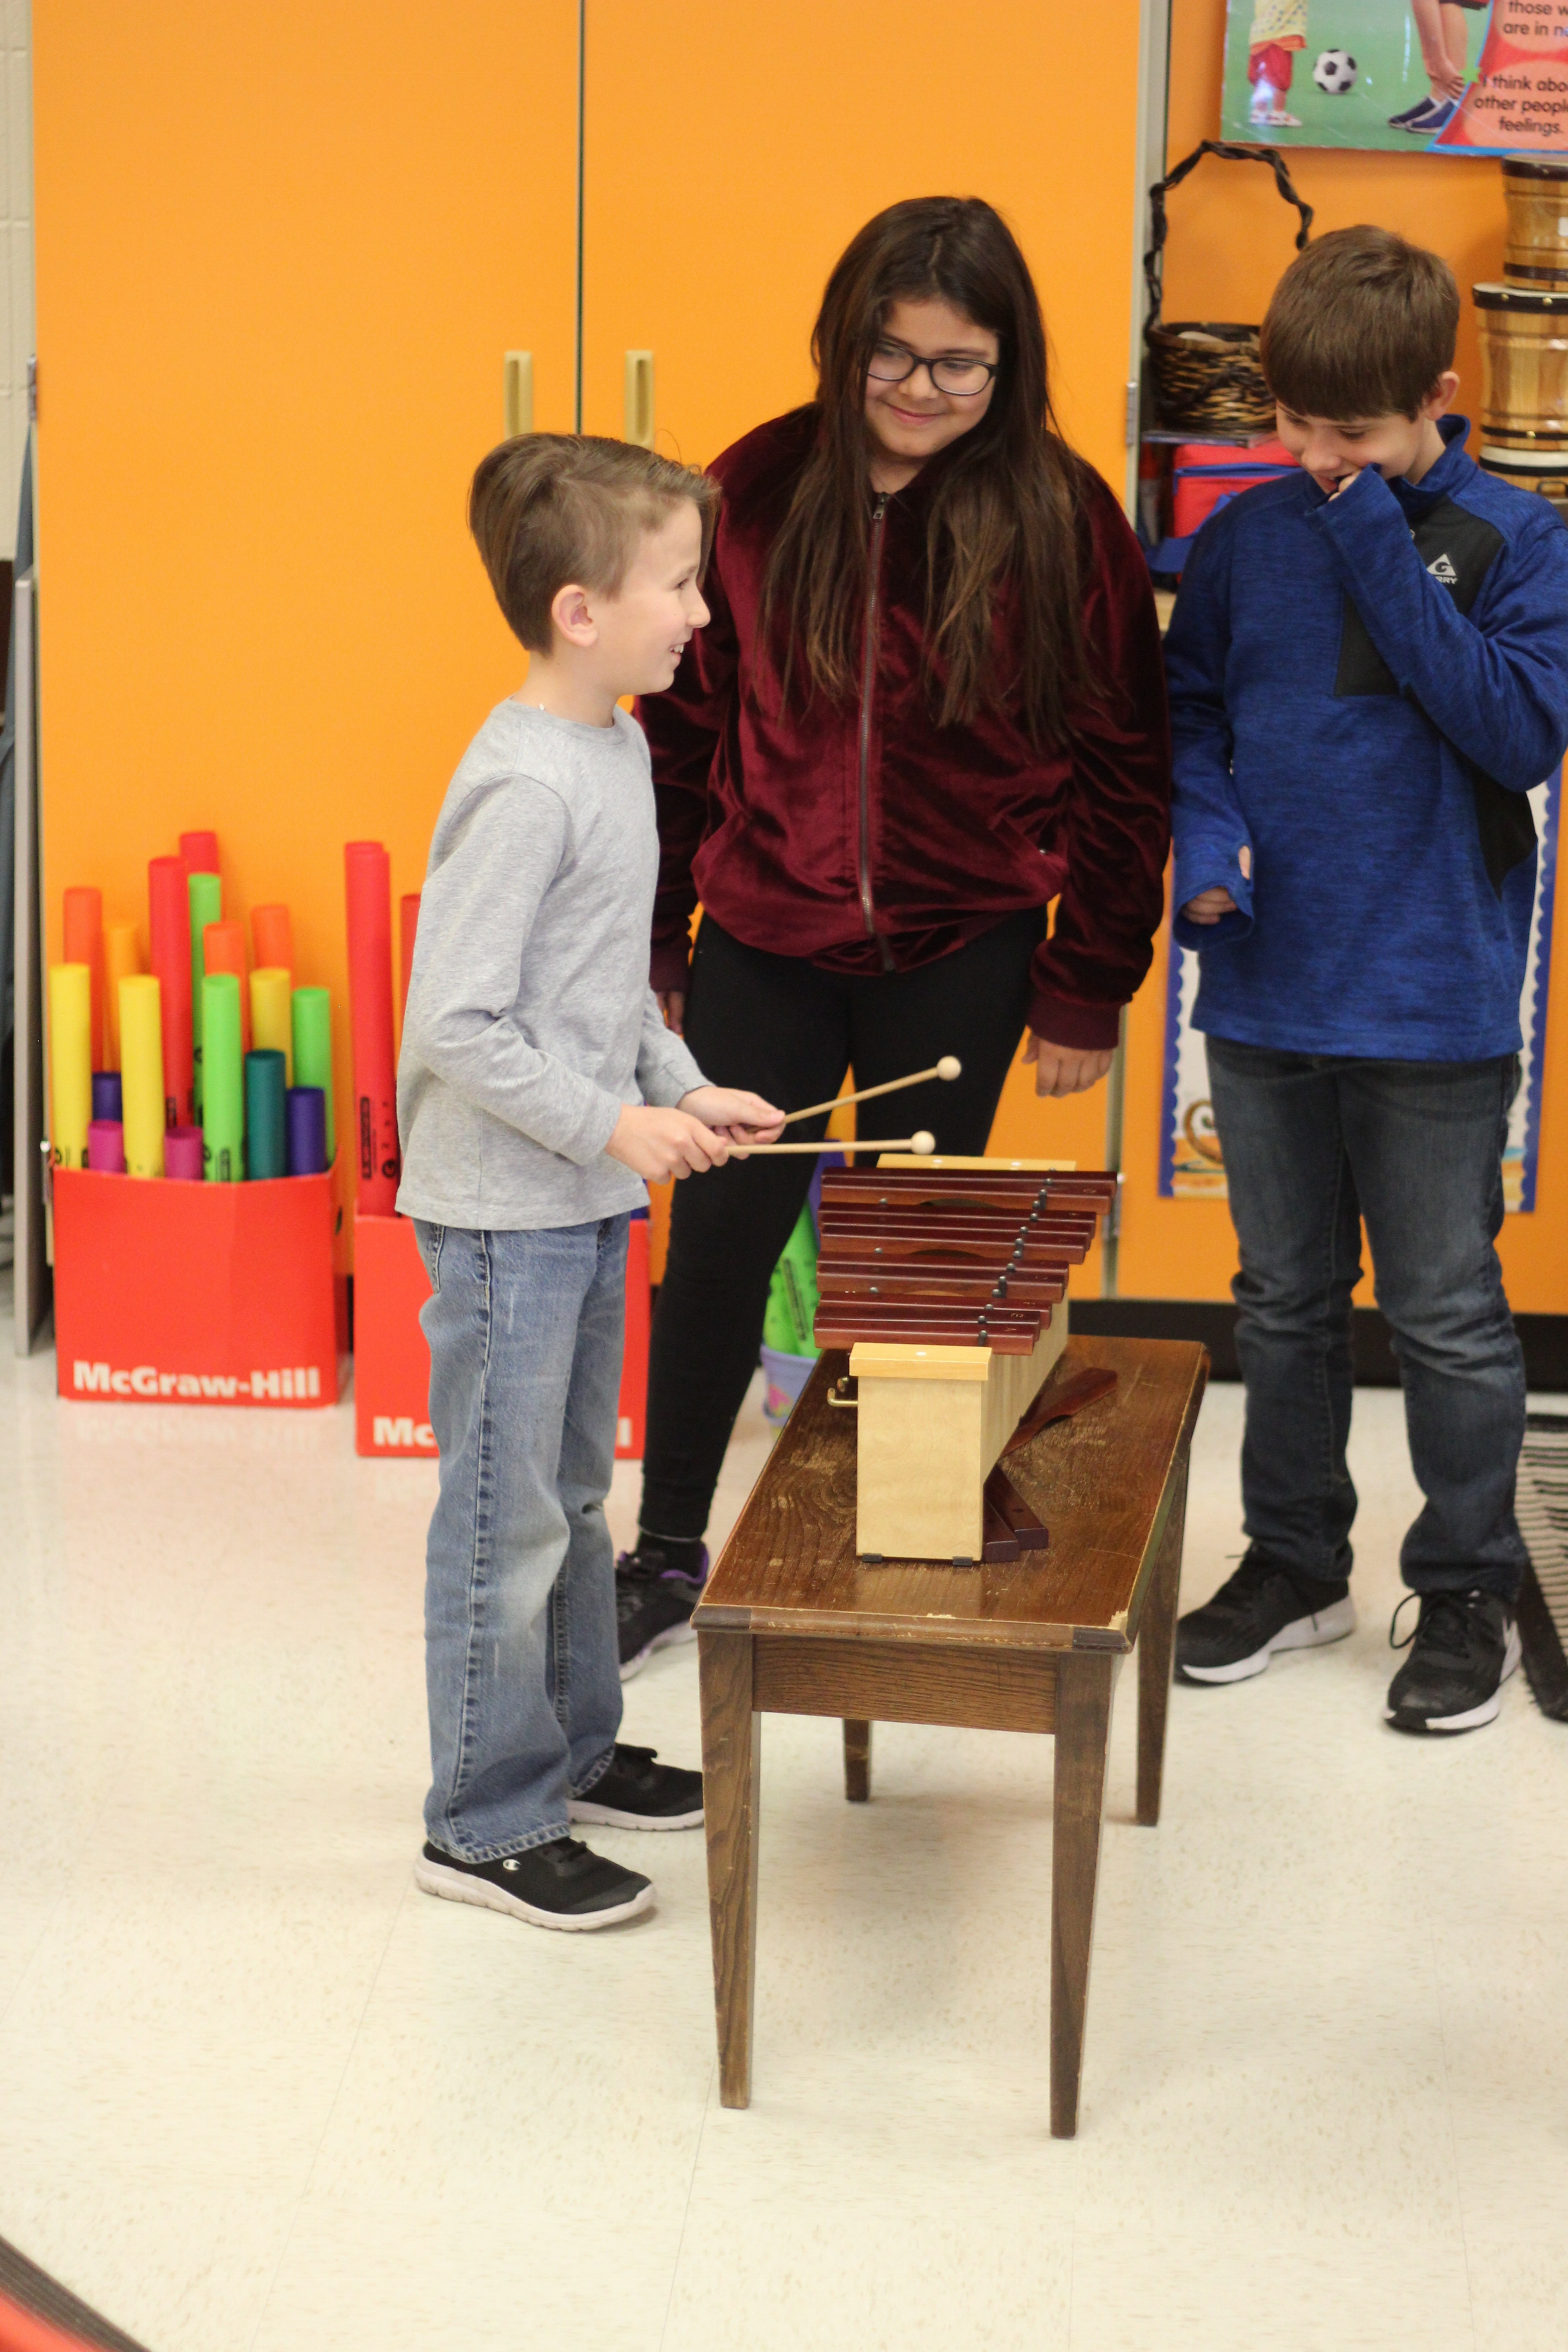 Students play the xylophone.